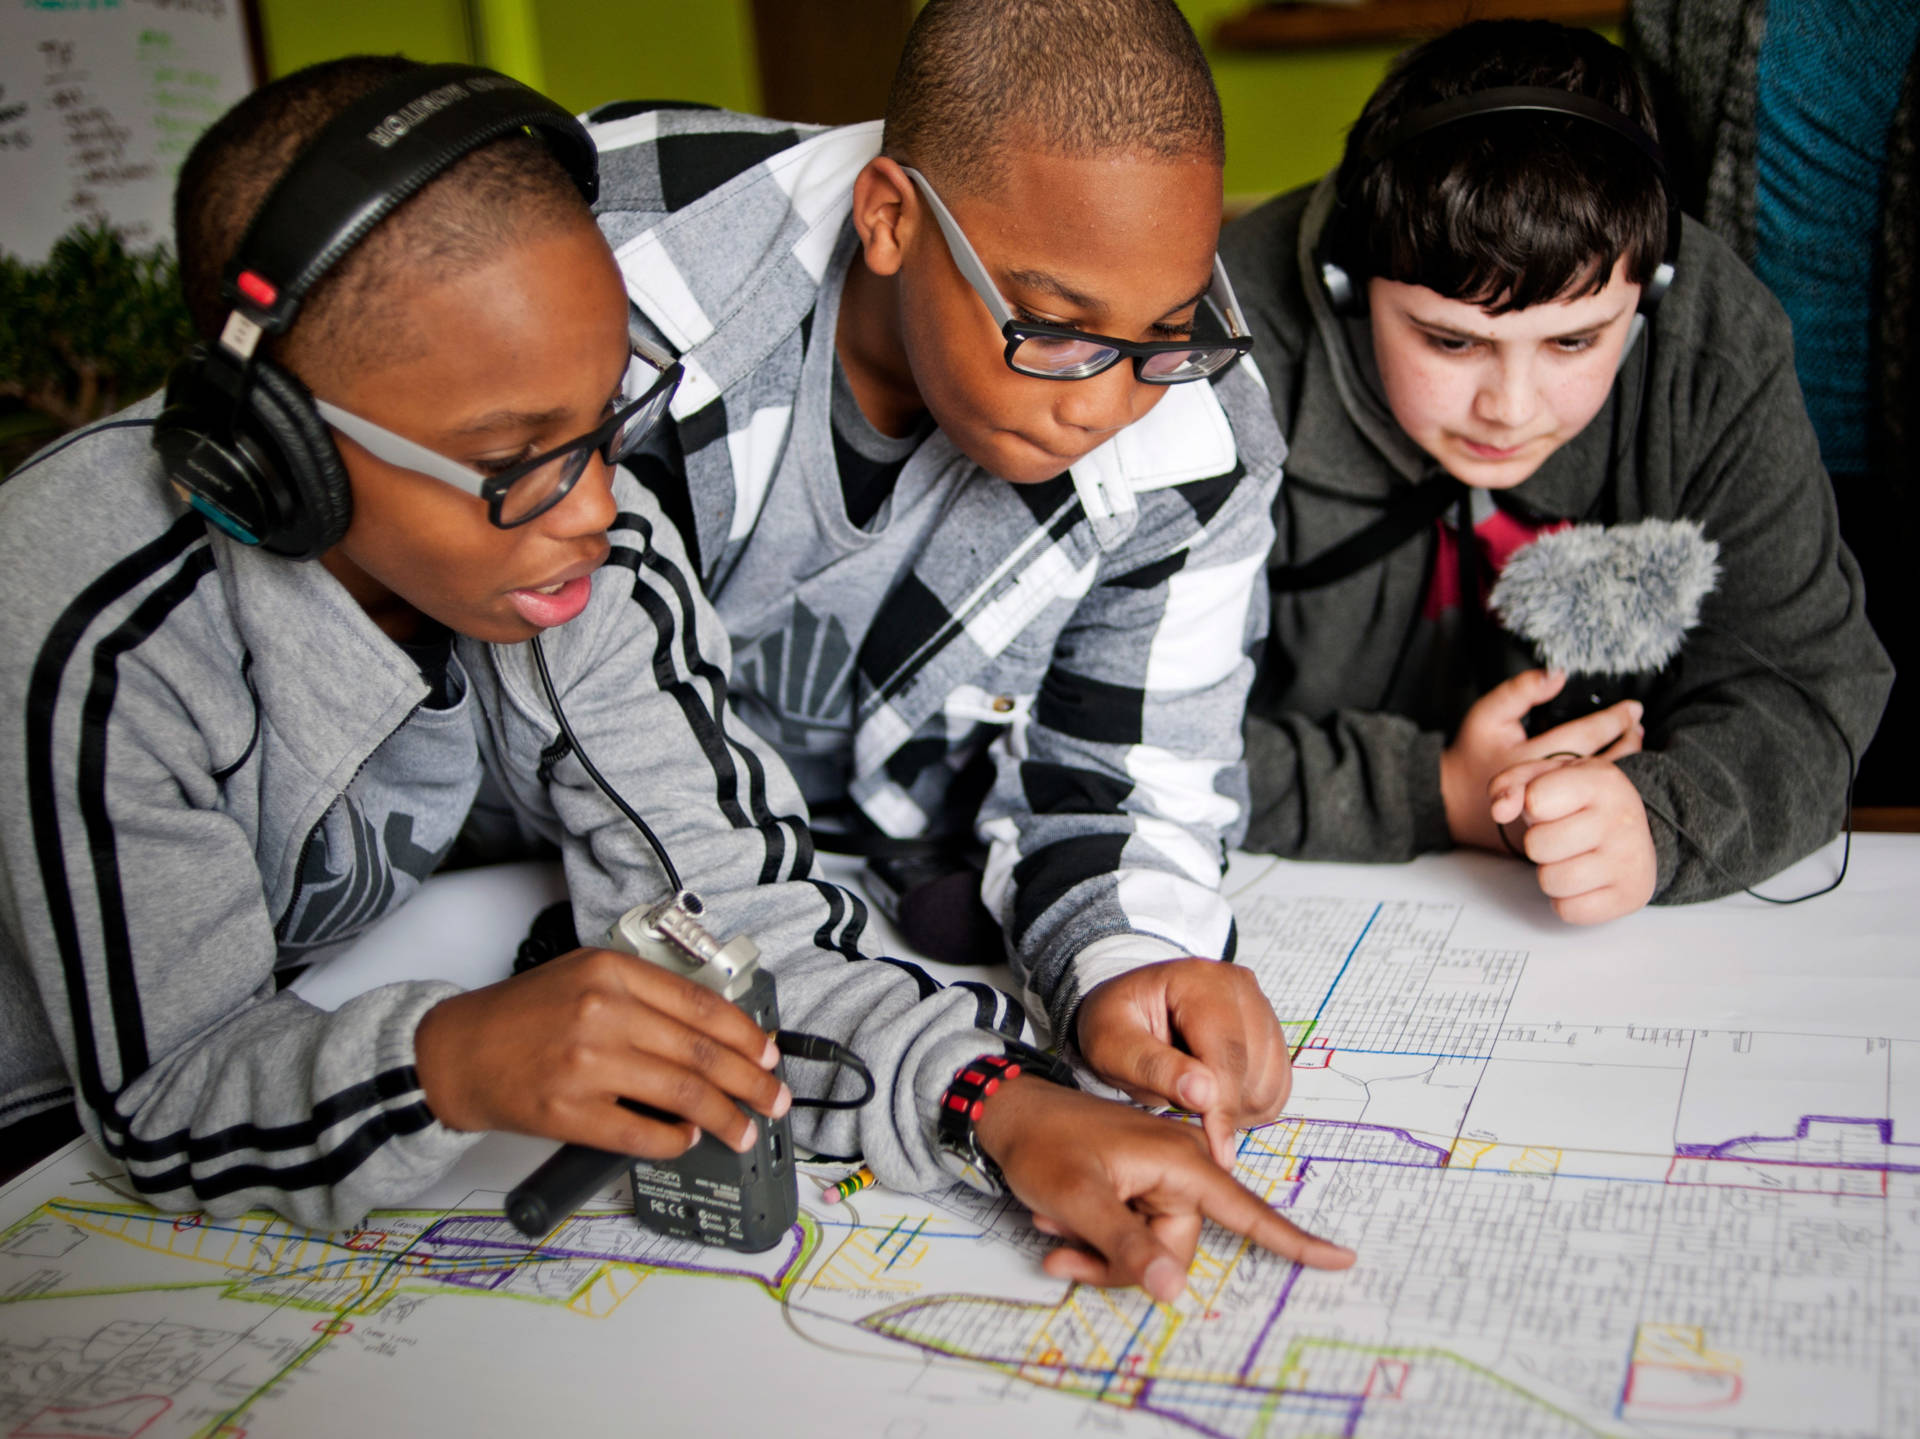 These Teens Started Podcasting As A Hobby, Then It Turned Into Serious Journalism | MindShift